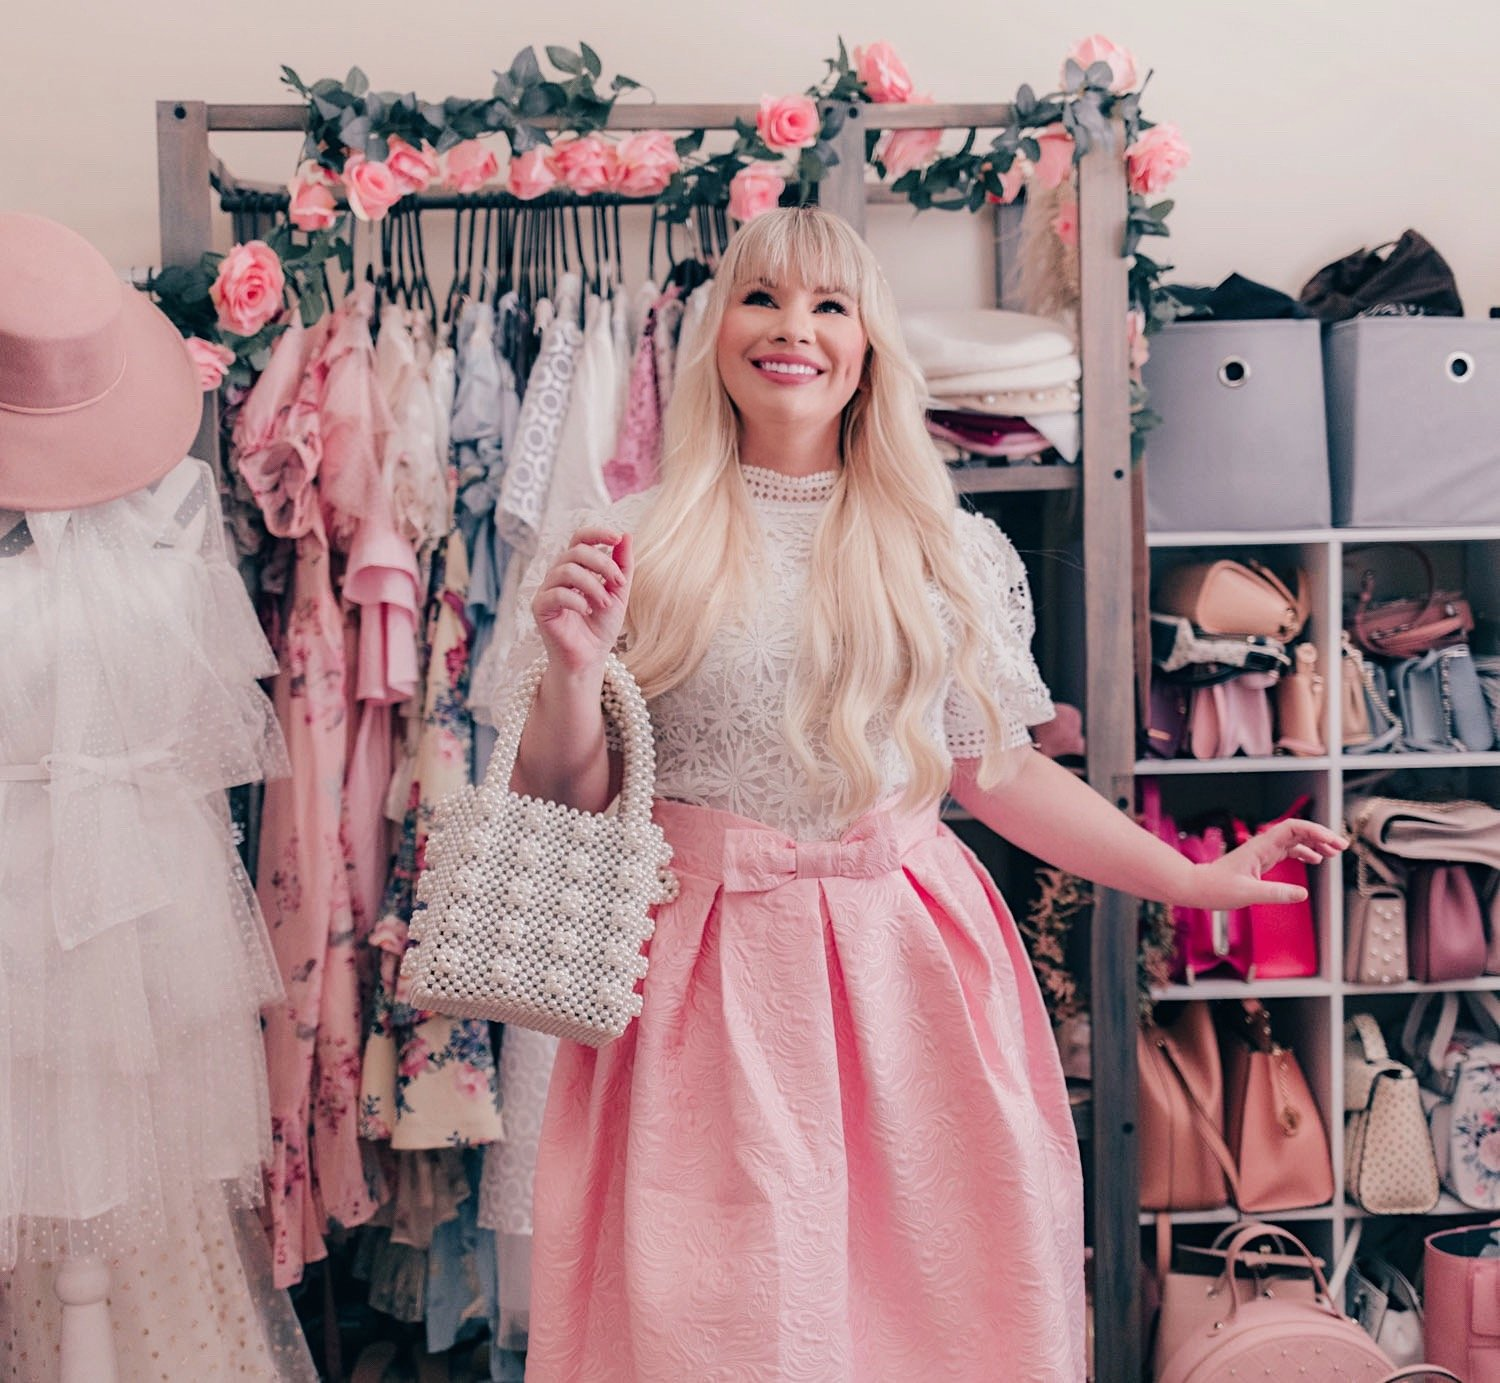 Fashion Blogger Elizabeth Hugen of Lizzie in Lace wears a white lace puff sleeve top and pink bow skirt from Chicwish